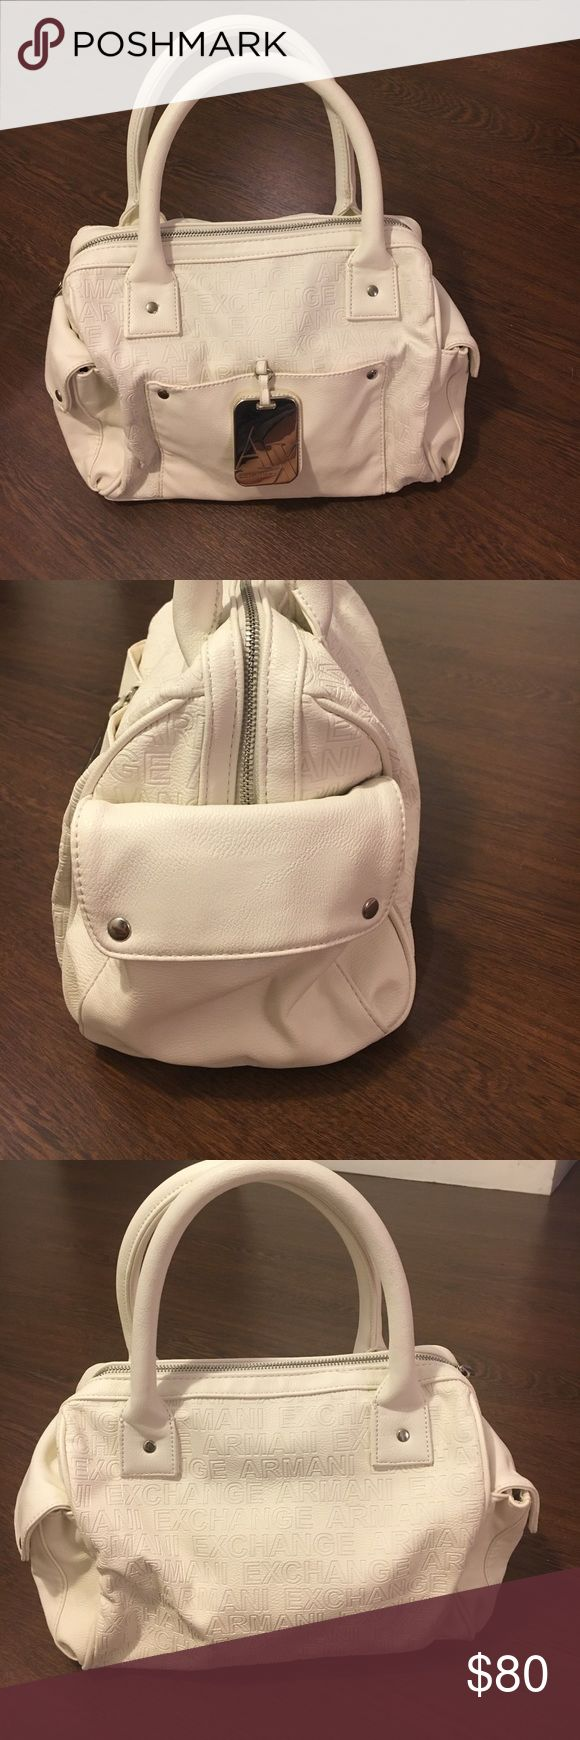 🔥SALE🔥White Armani Exchange Purse Gorgeous White A/X Armani Exchange Purse. Never used, like brand new! A/X Armani Exchange Bags